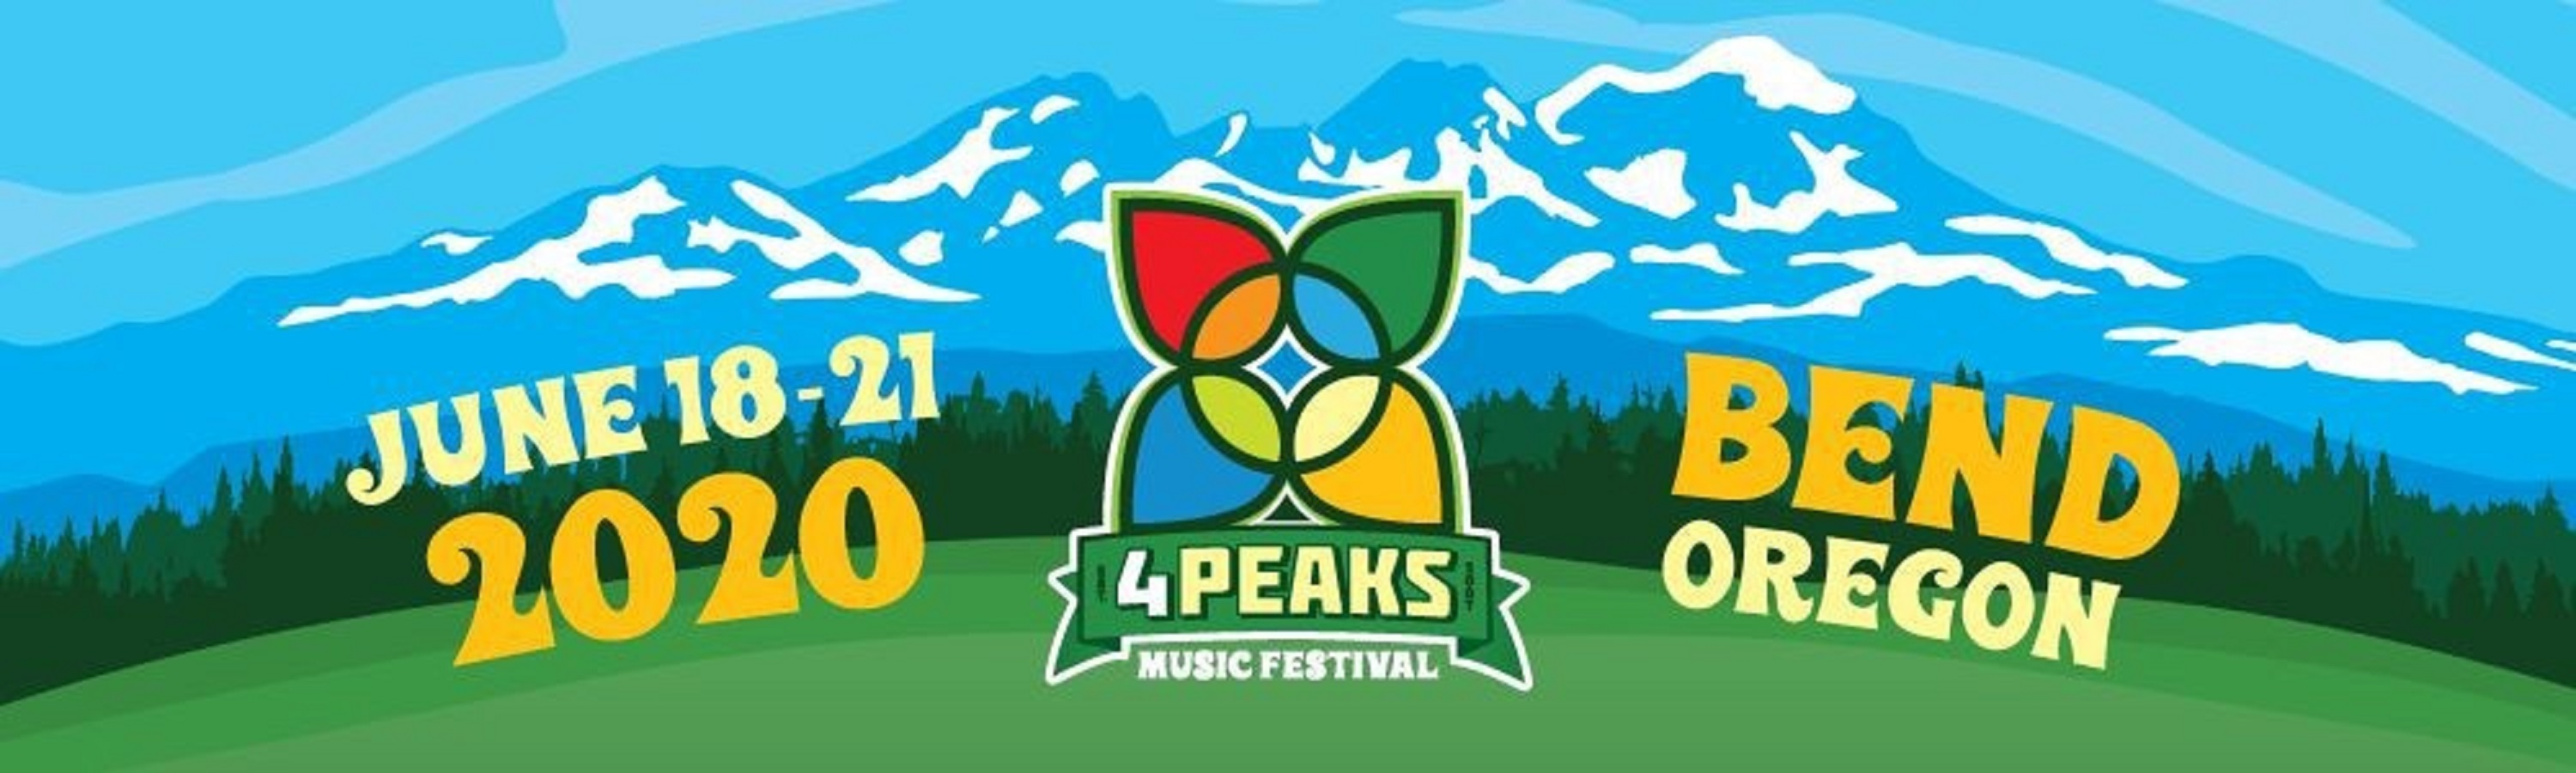 Save The Date for Bend's 13th Annual '4 Peaks Music Festival'